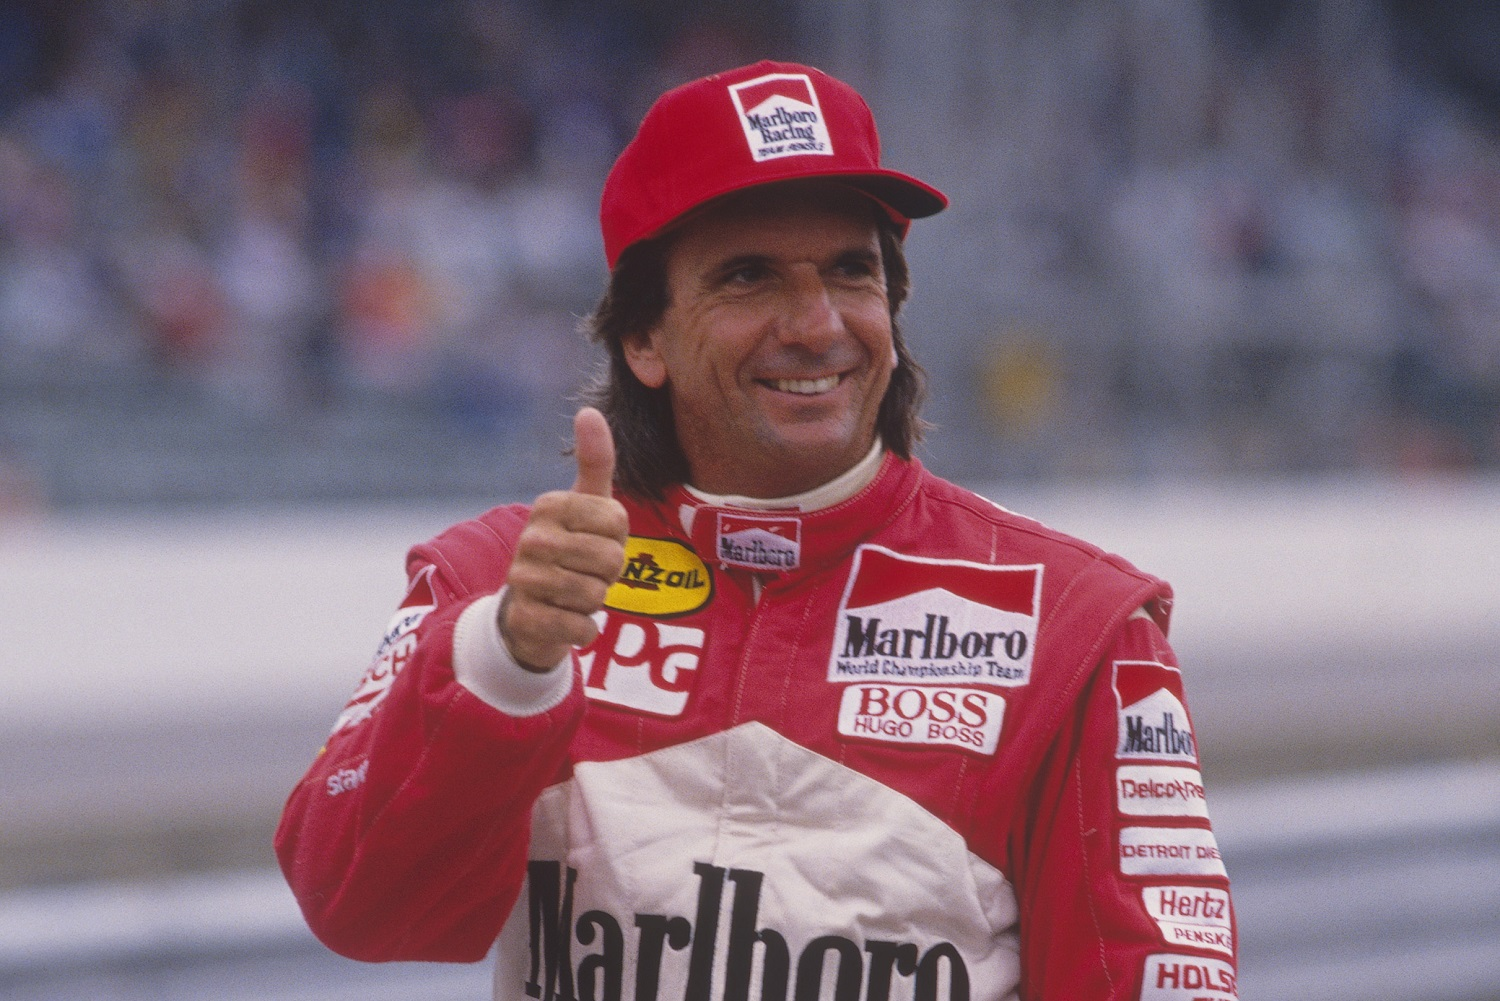 Indianapolis 500 Fans Booed Winner Emerson Fittipaldi for the Oddest Reason